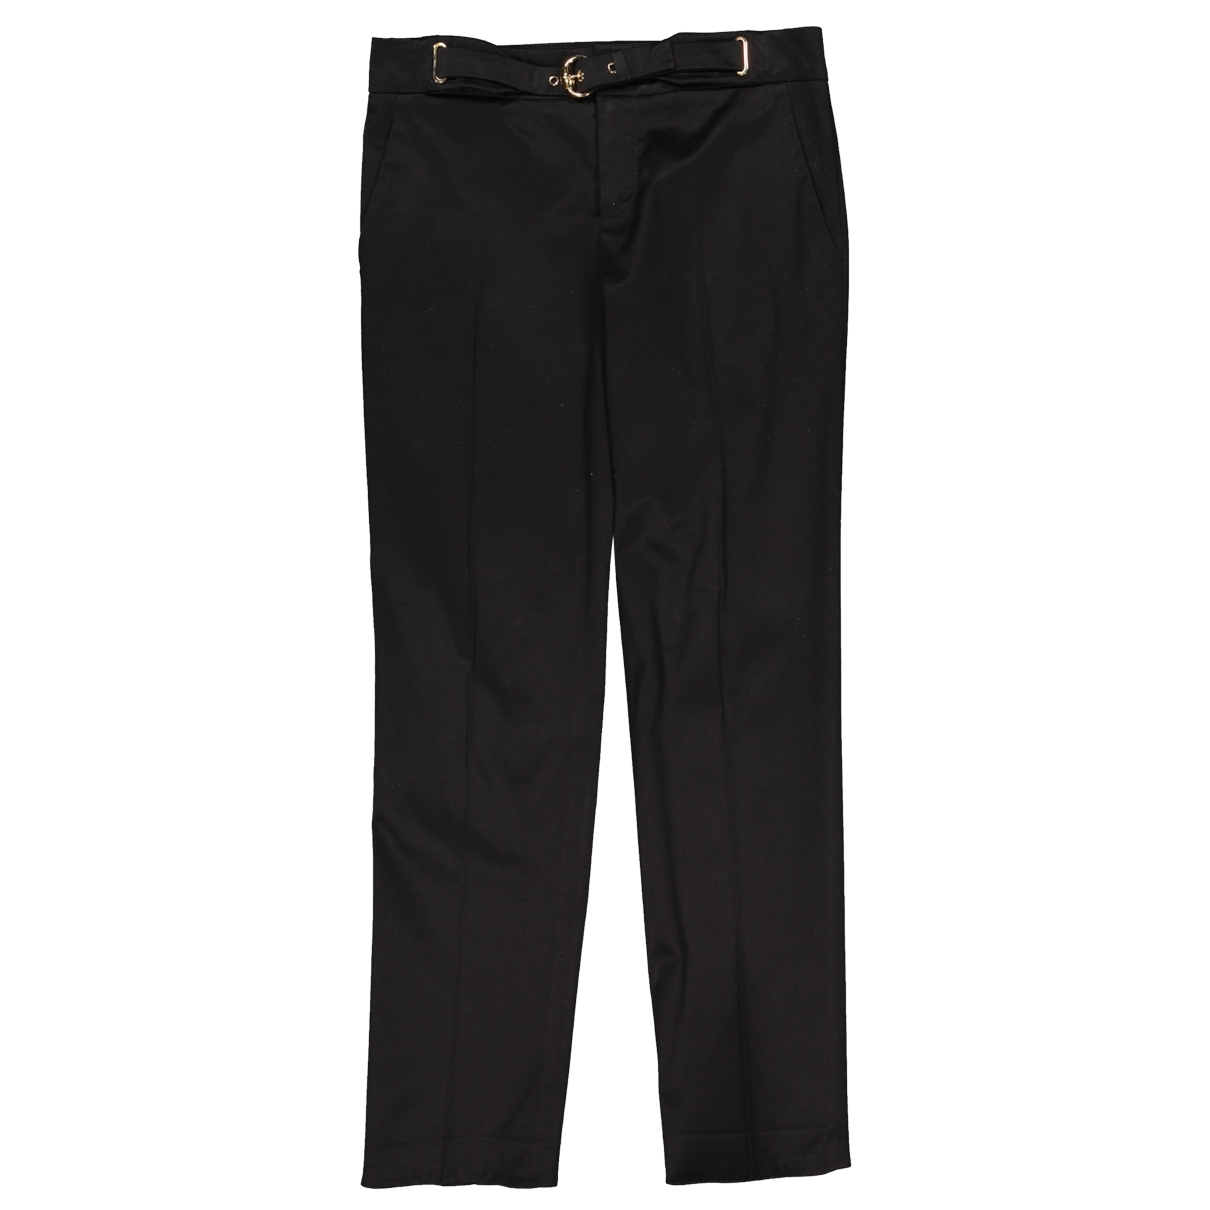 Gucci \N Black Cotton Trousers for Women 38 IT